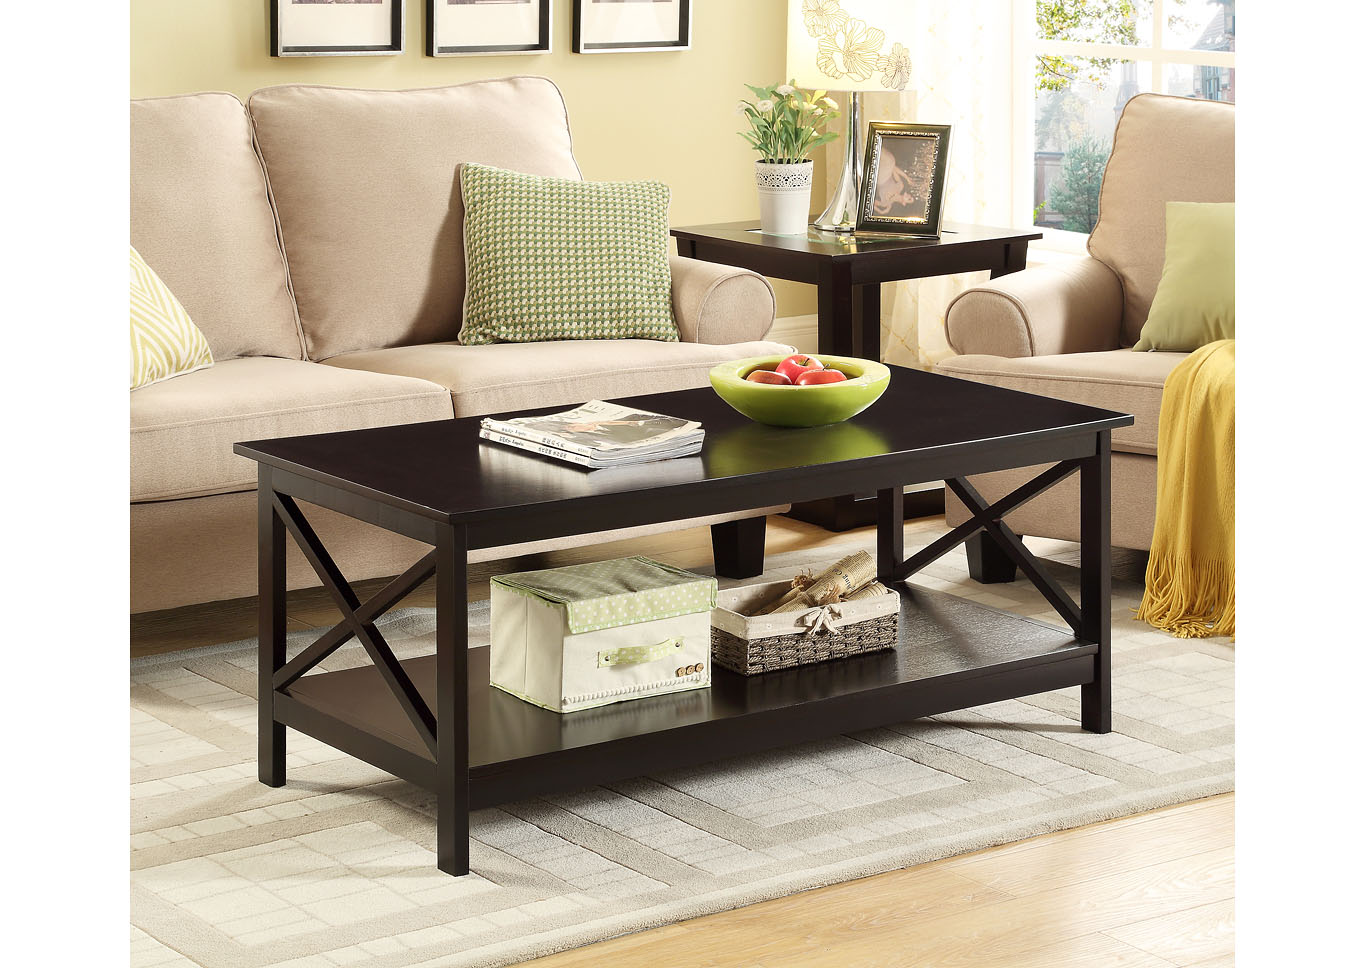 Coffee Coffee Table With Shelf,Global Trading